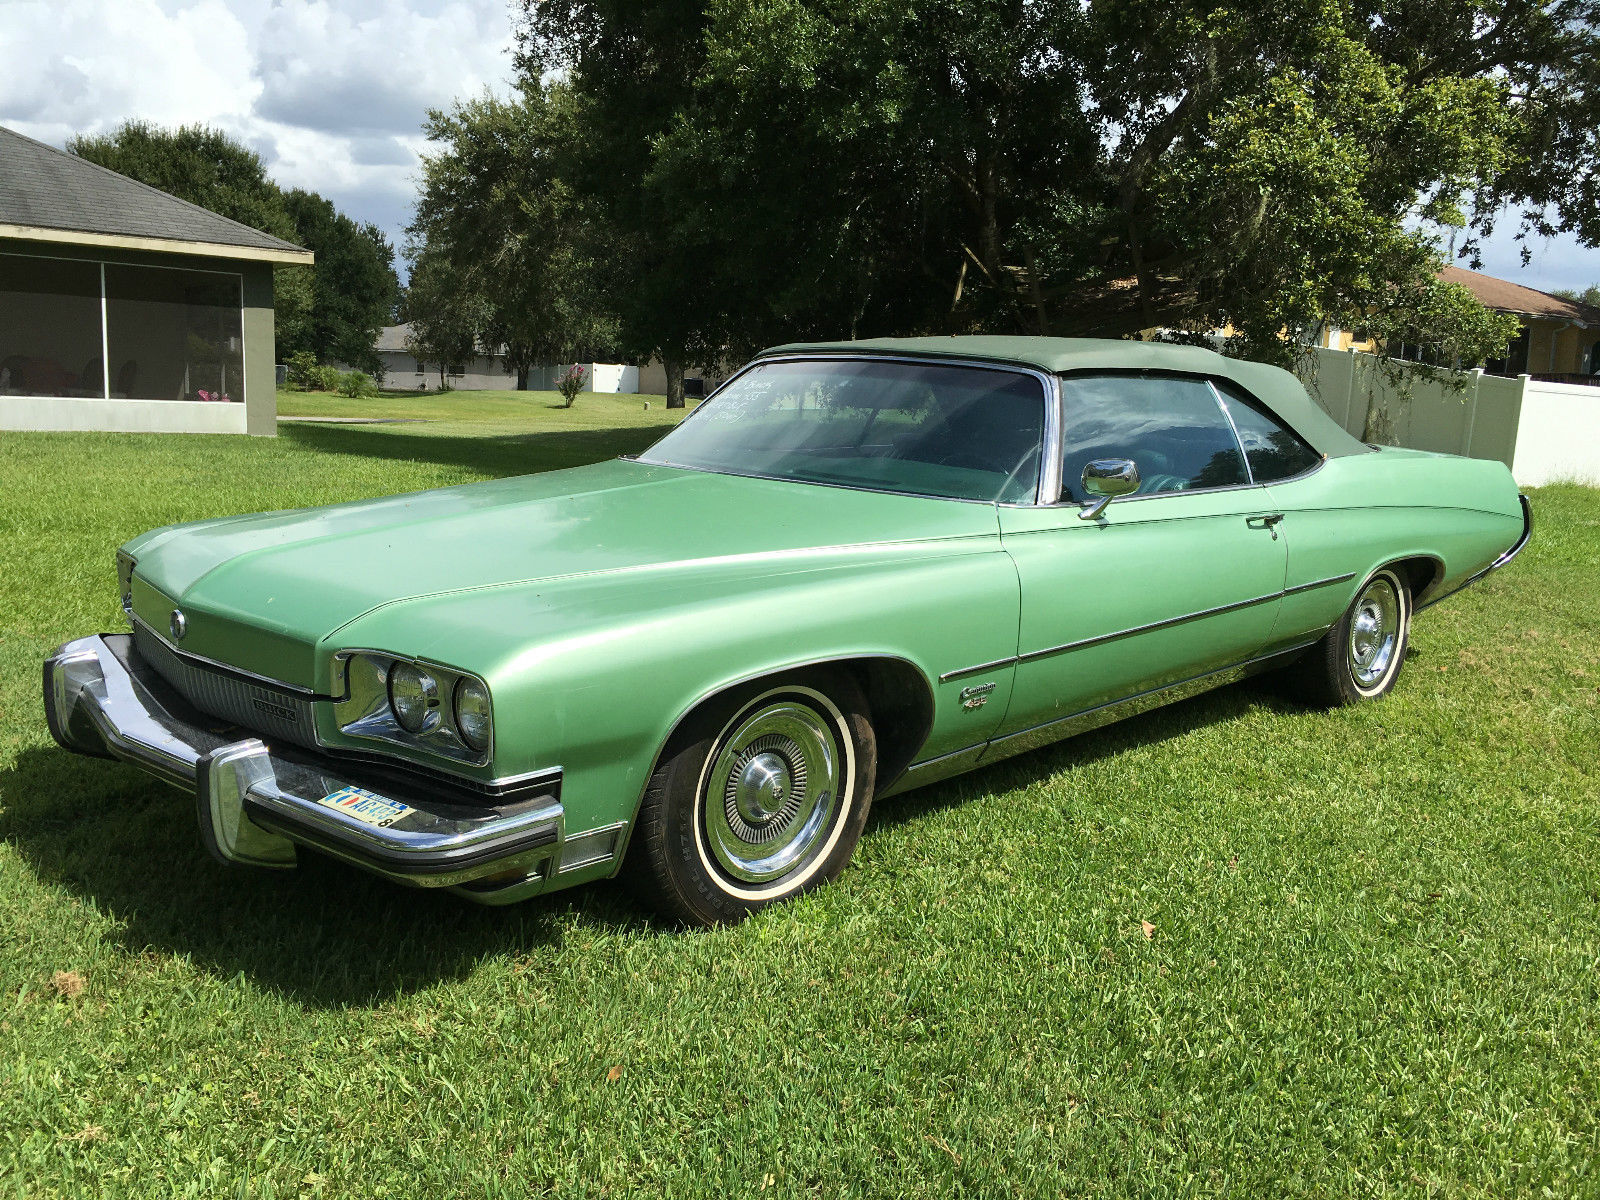 Buick Centurion Convertible For Sale on 1973 Buick Electra 225